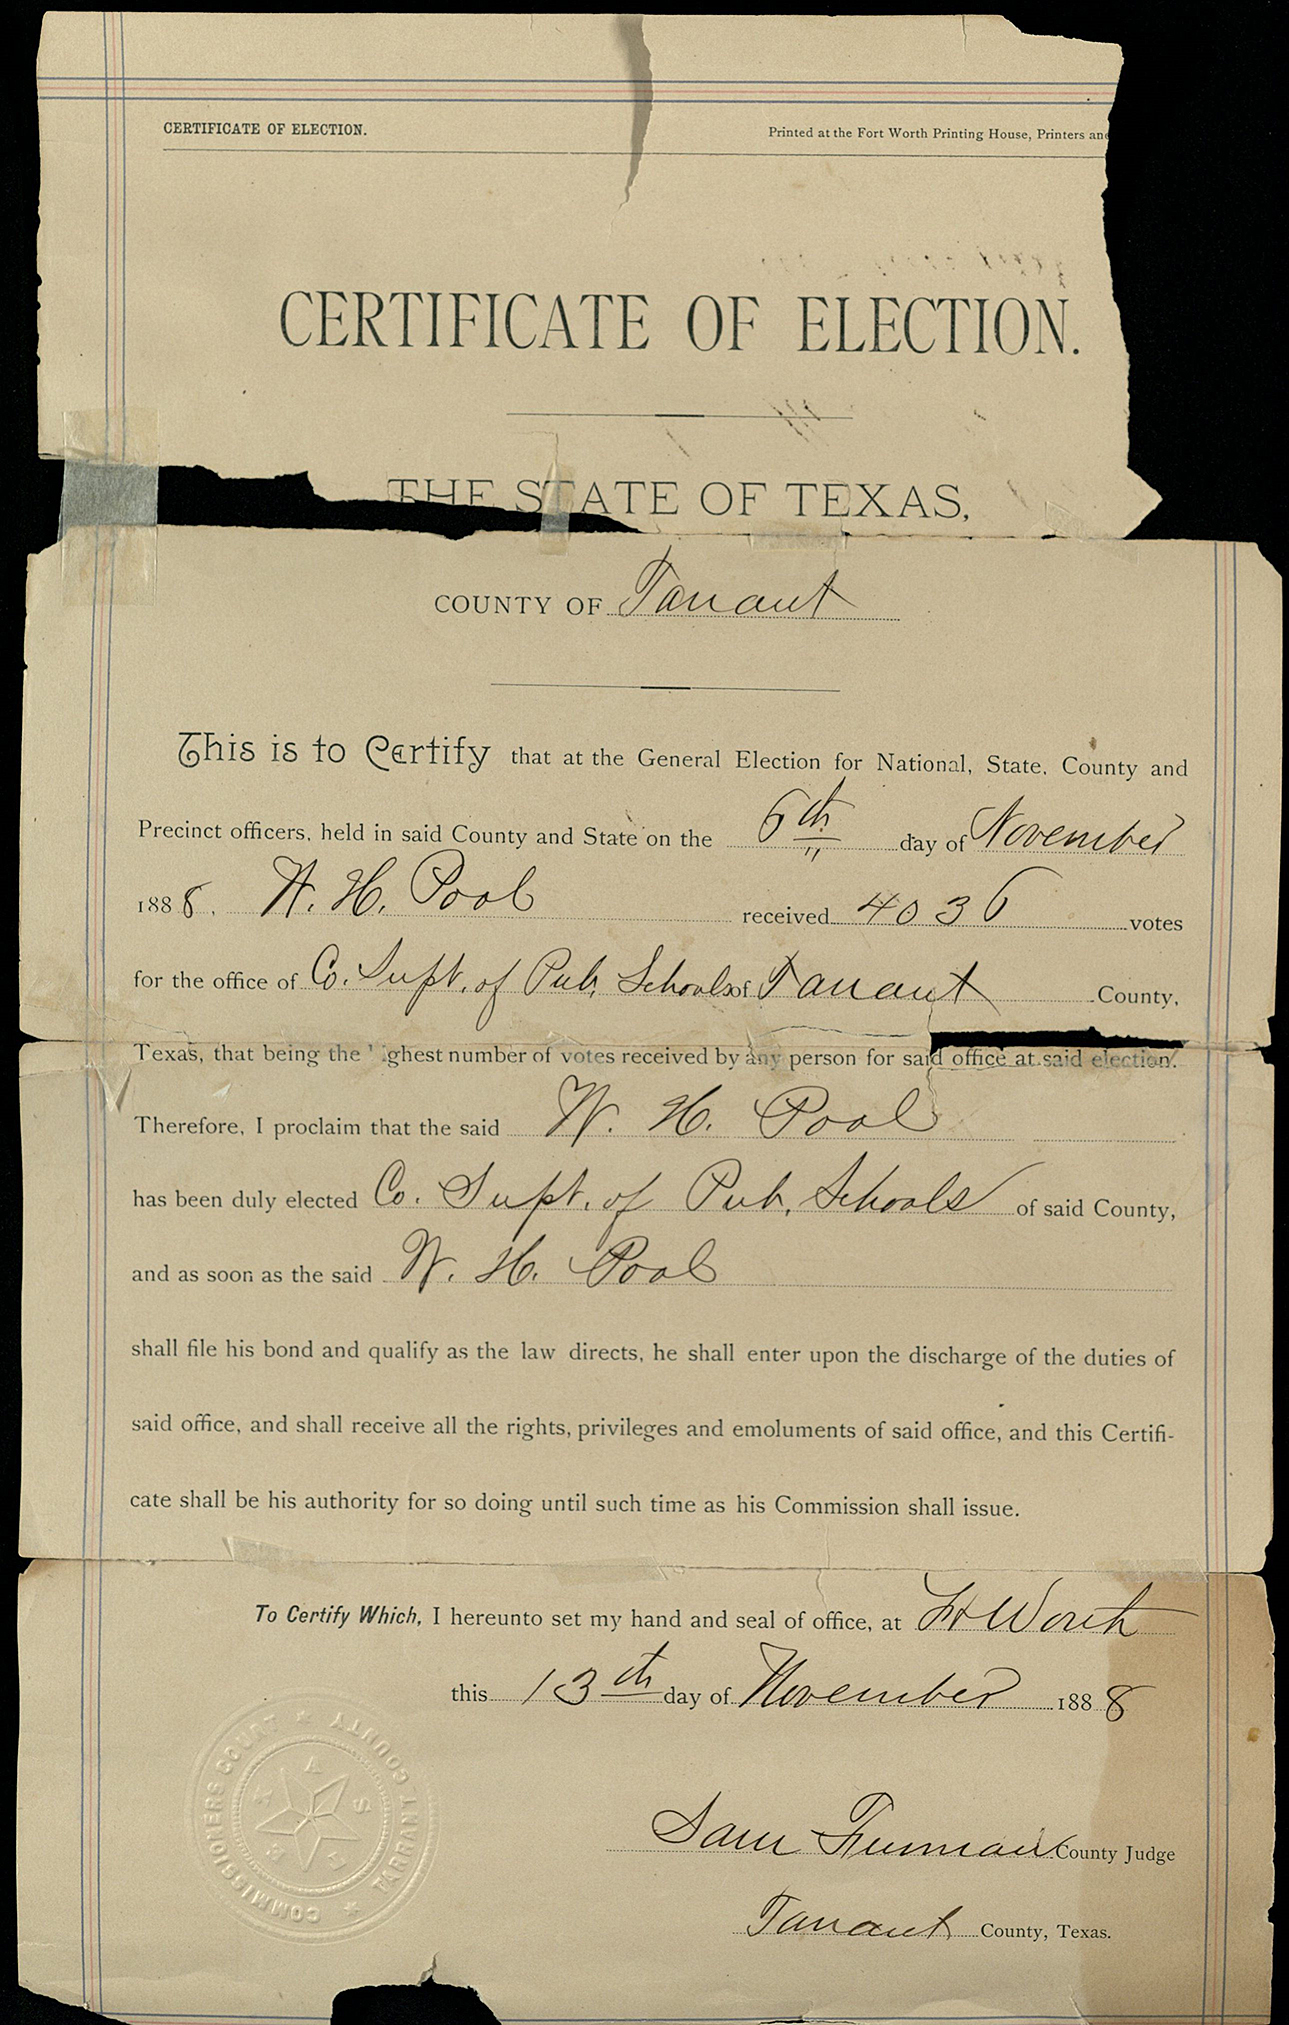 Tarrant County superintendent election certificate for Wade Hill Pool, 1888